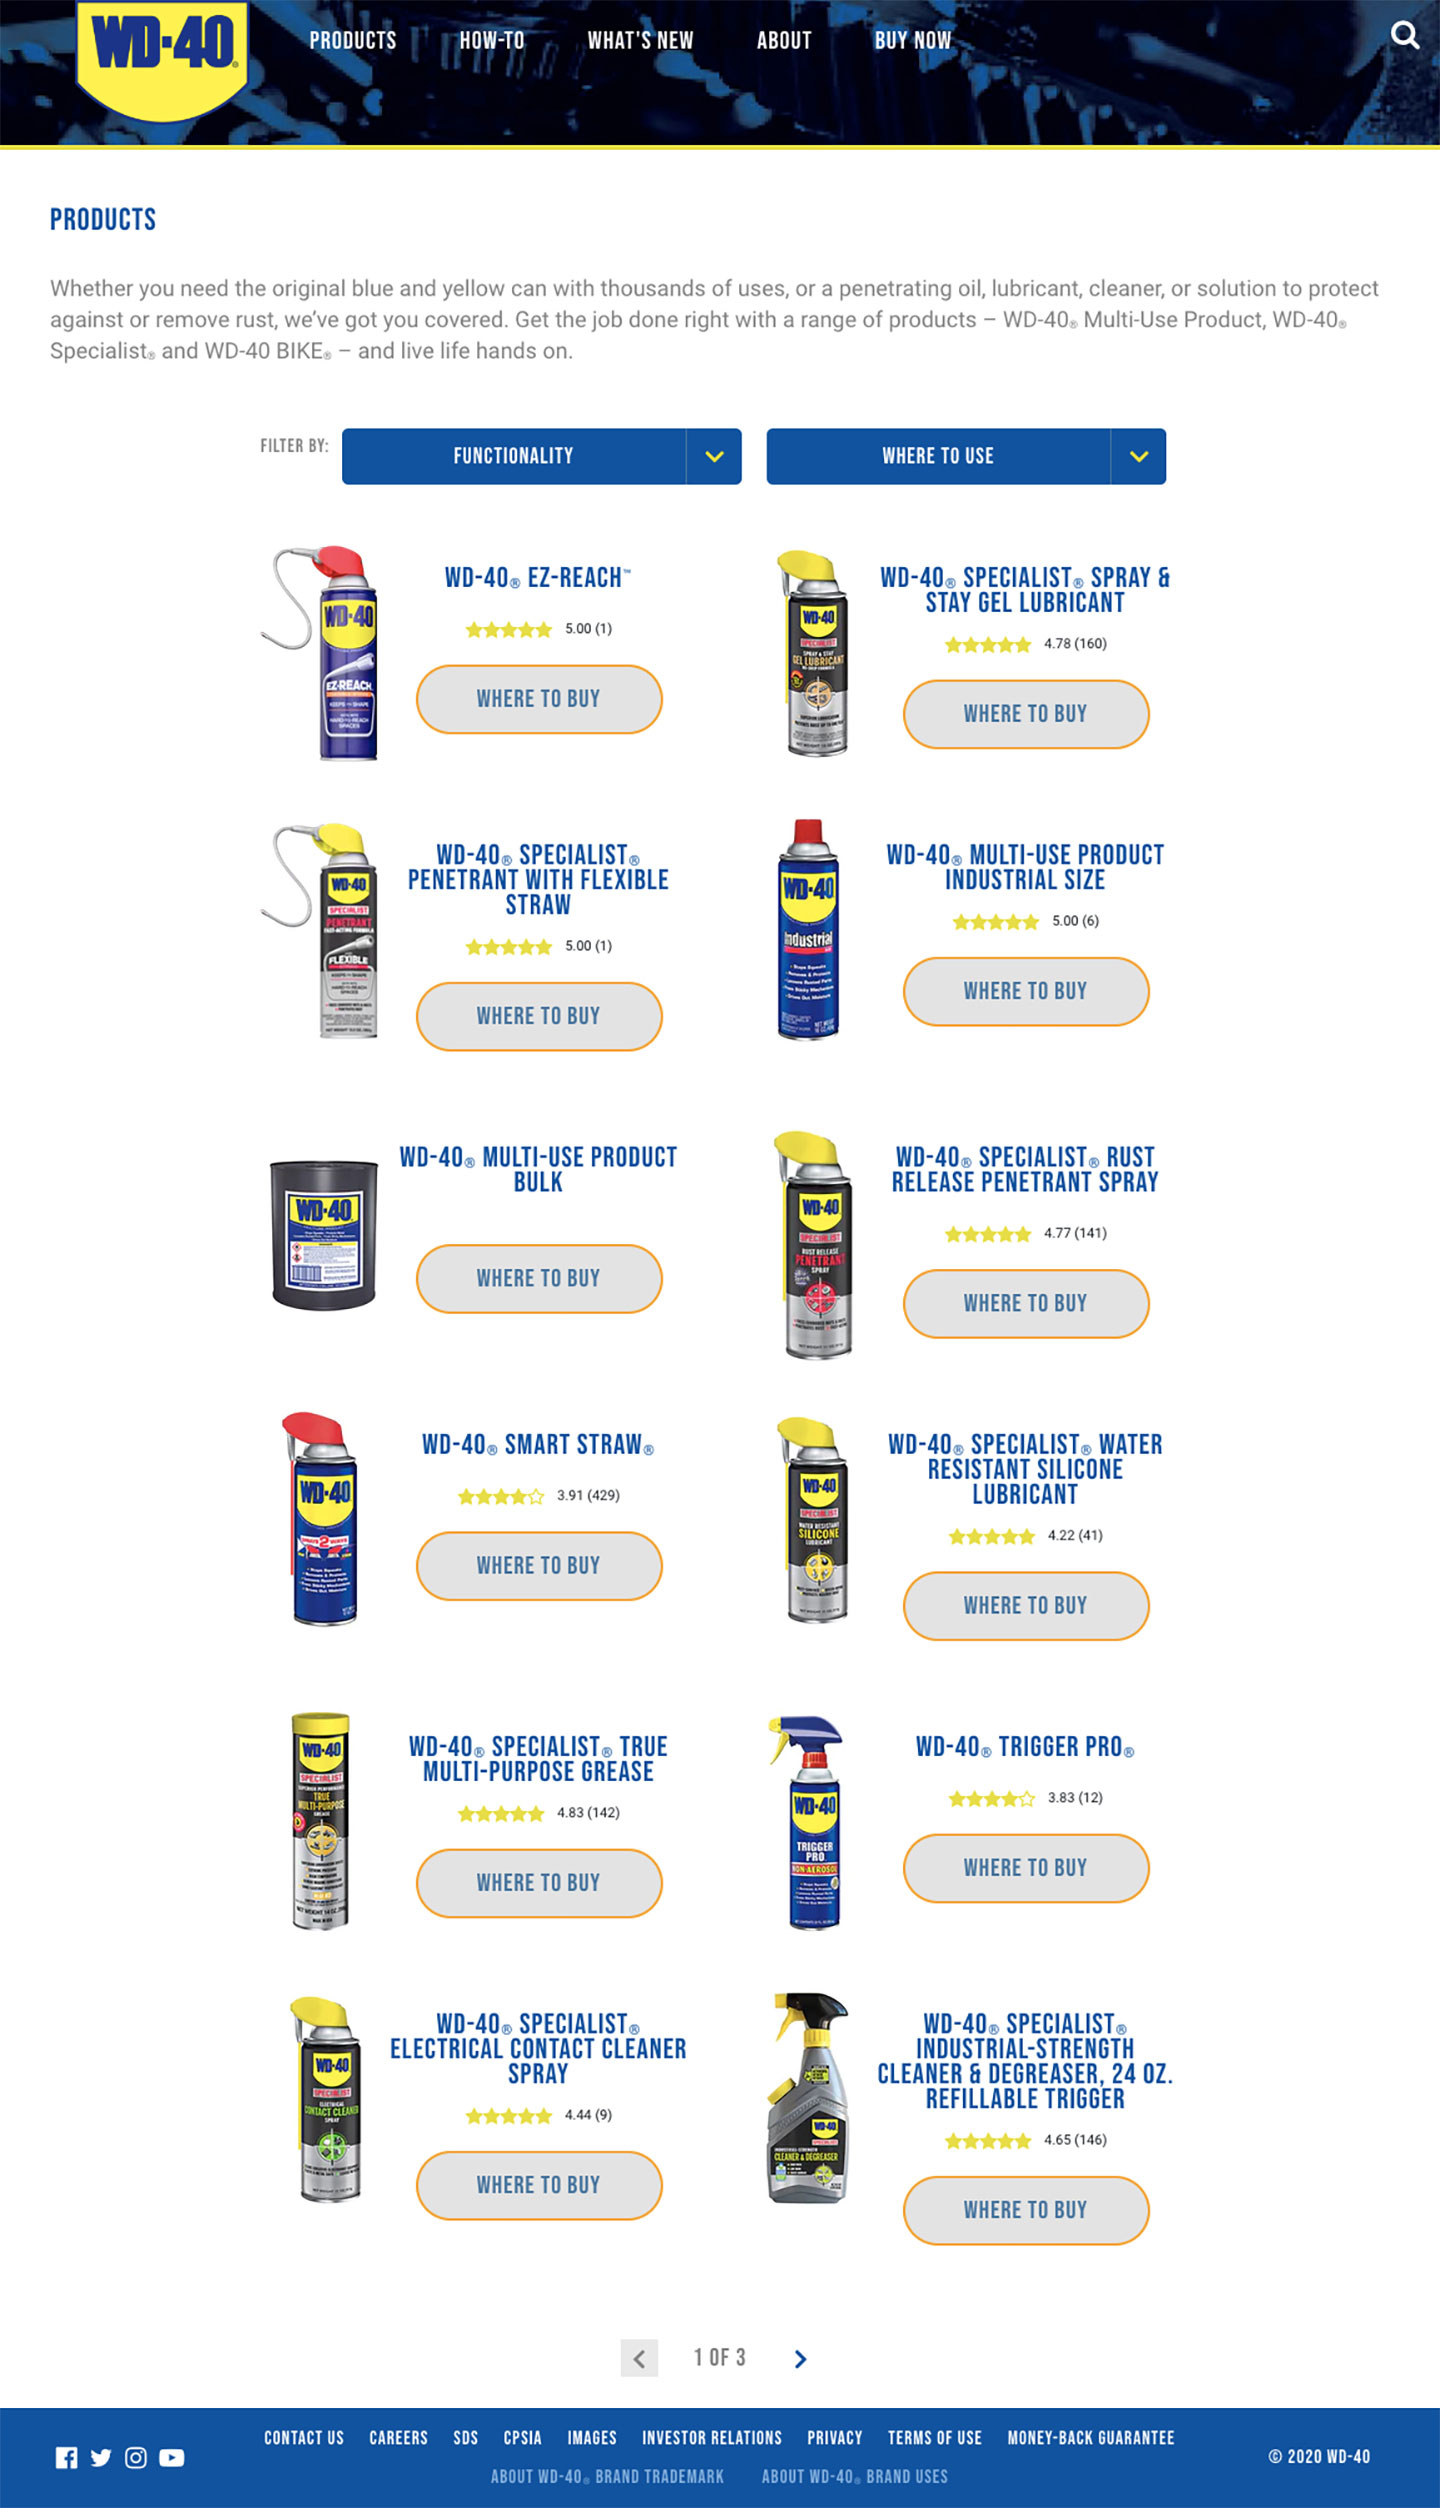 A screenshot of WD-40's website's product browse page.